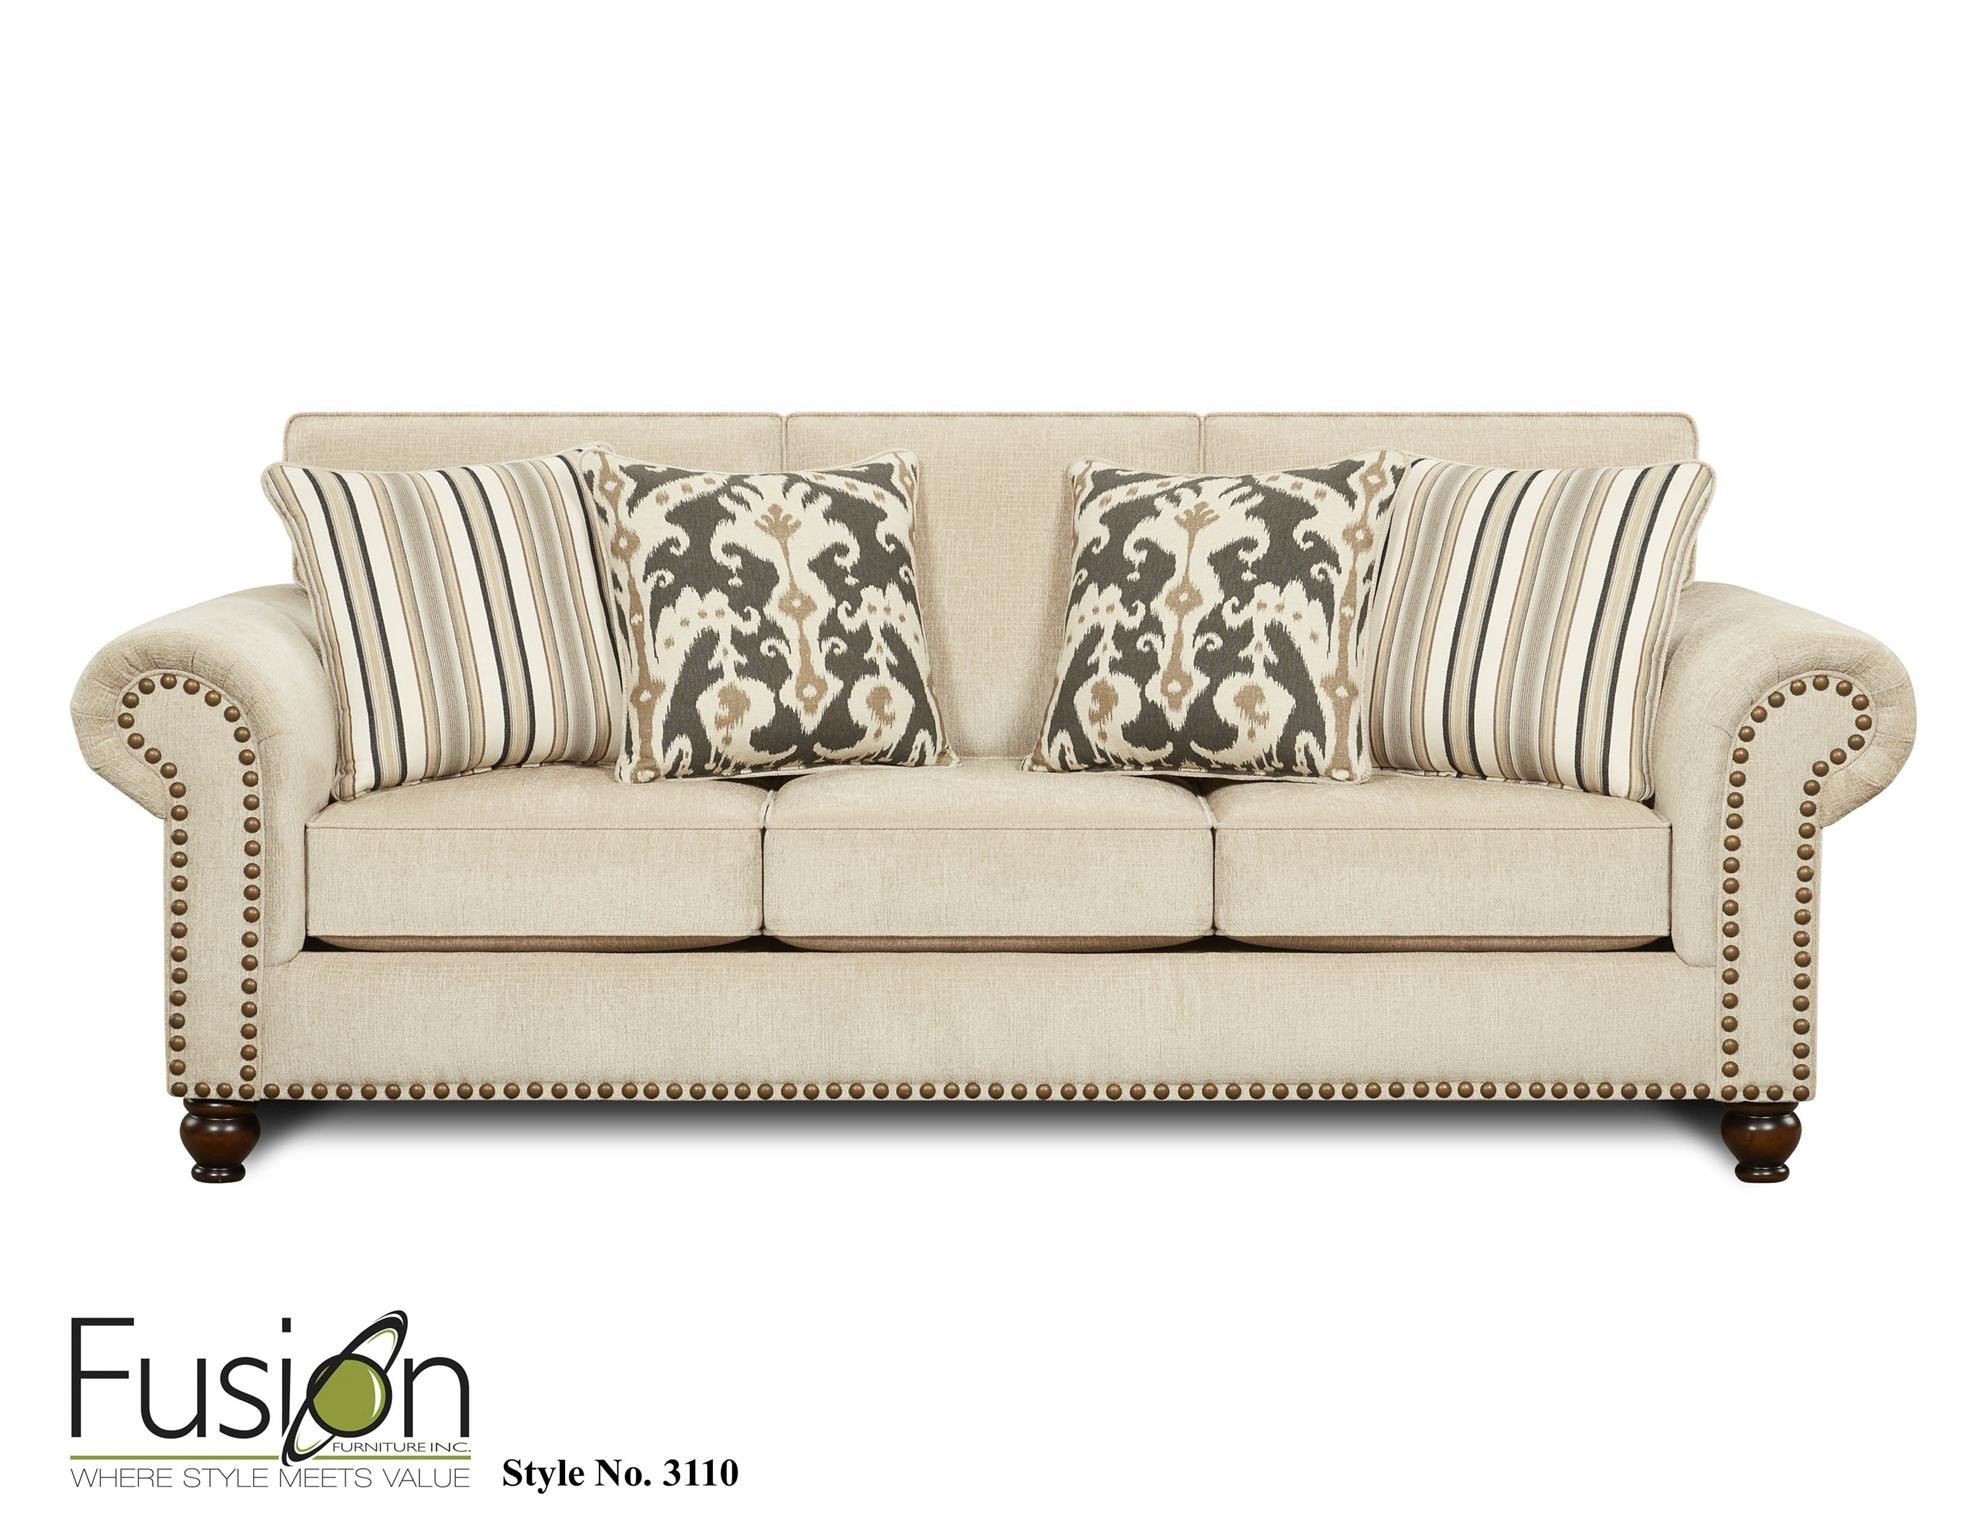 Fusion Living Room Sofa 3110Fairly Sand At B.F. Myers Furniture